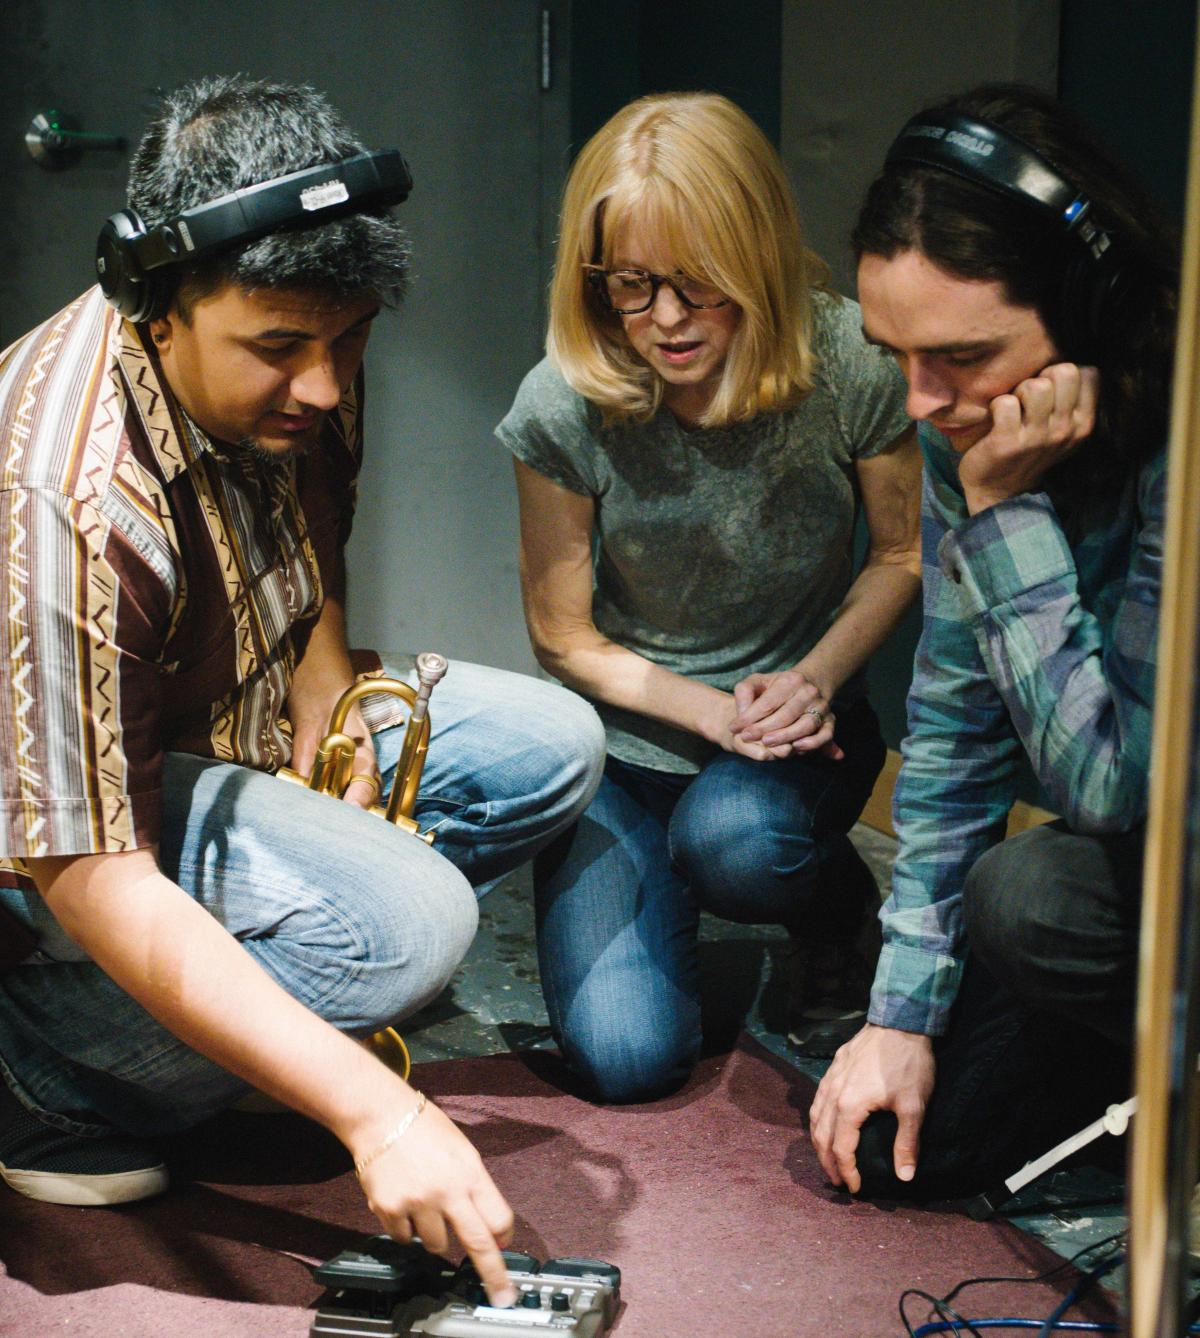 From left: Mike Rodriguez, Maria Schneider and Michael Lenssen in the studio during the making of Data Lords.